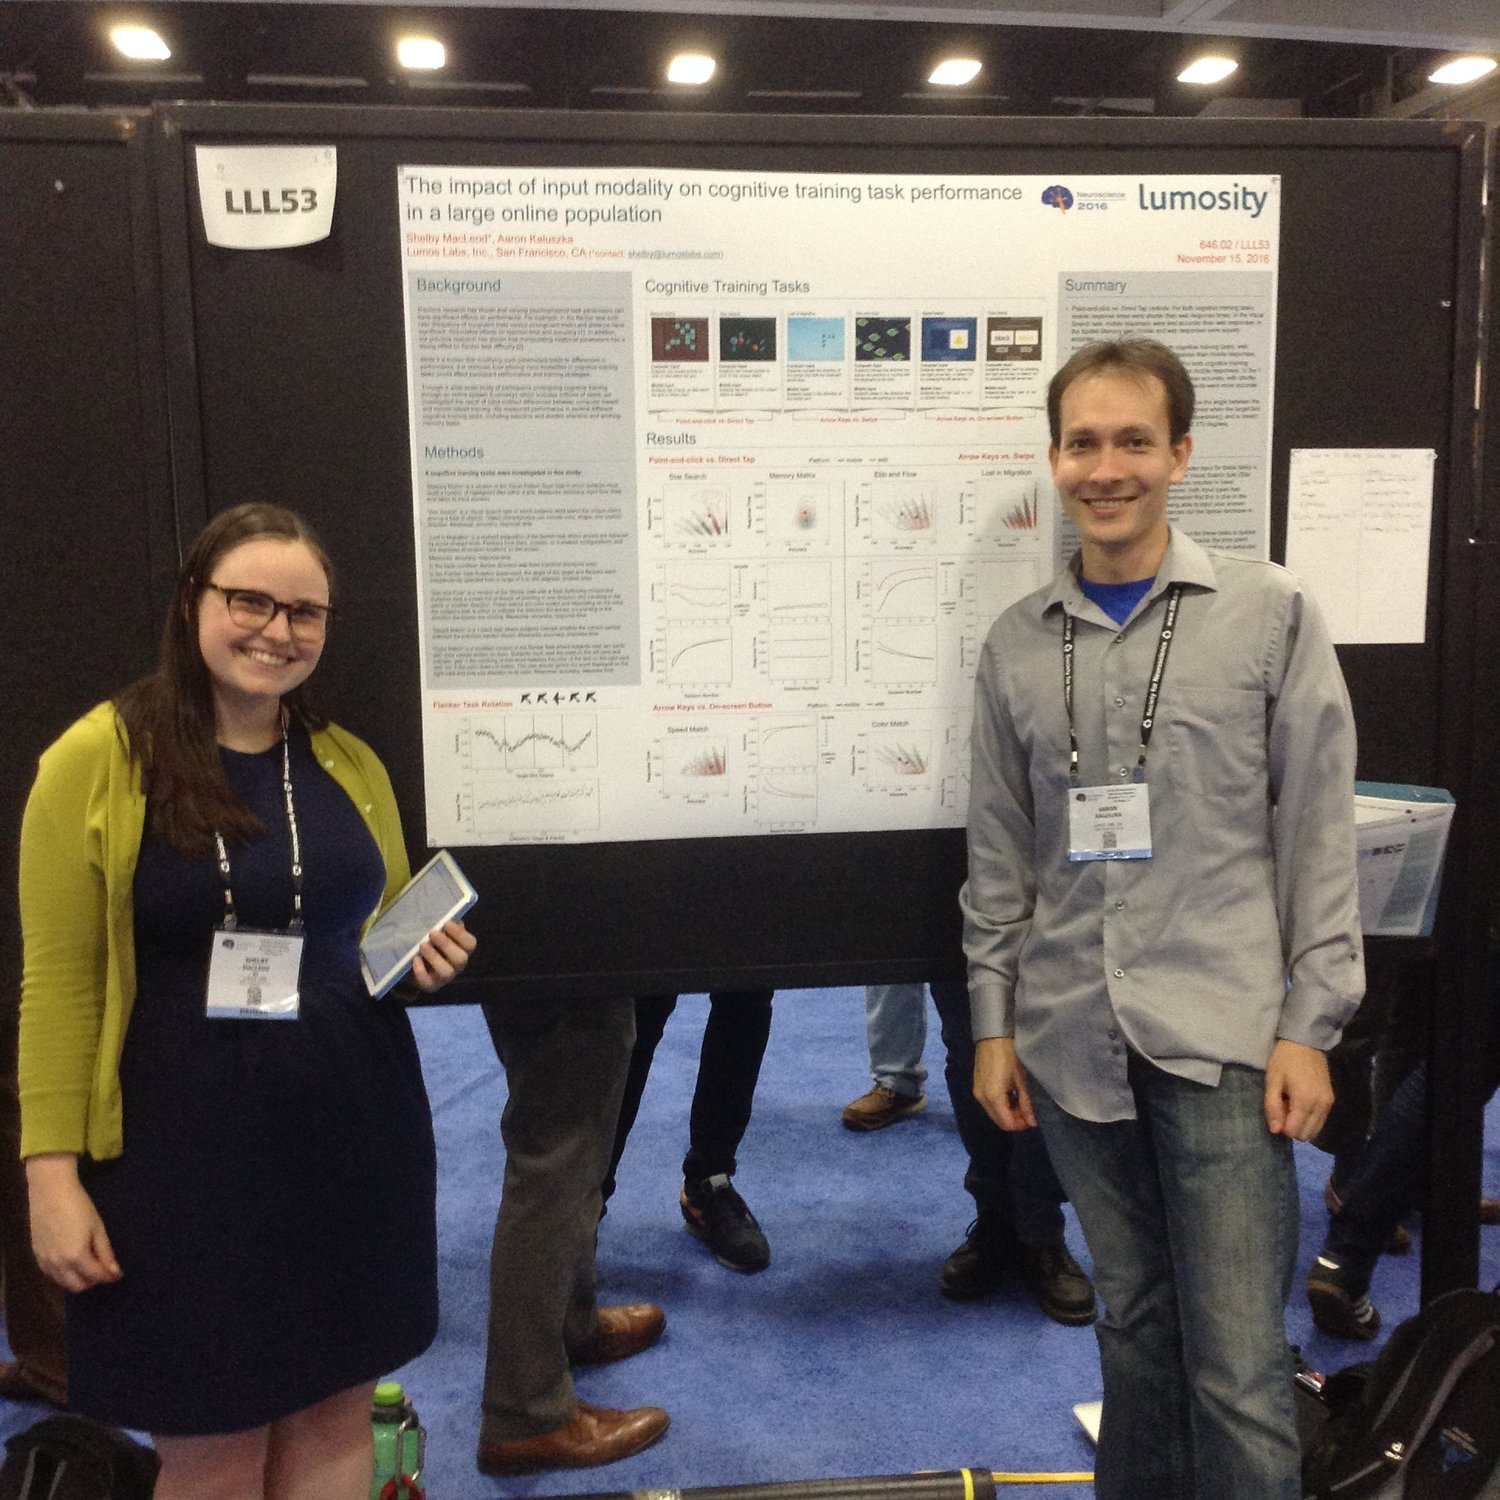 Lumosity at the 2016 Society for Neuroscience Annual Meeting 1500x1500